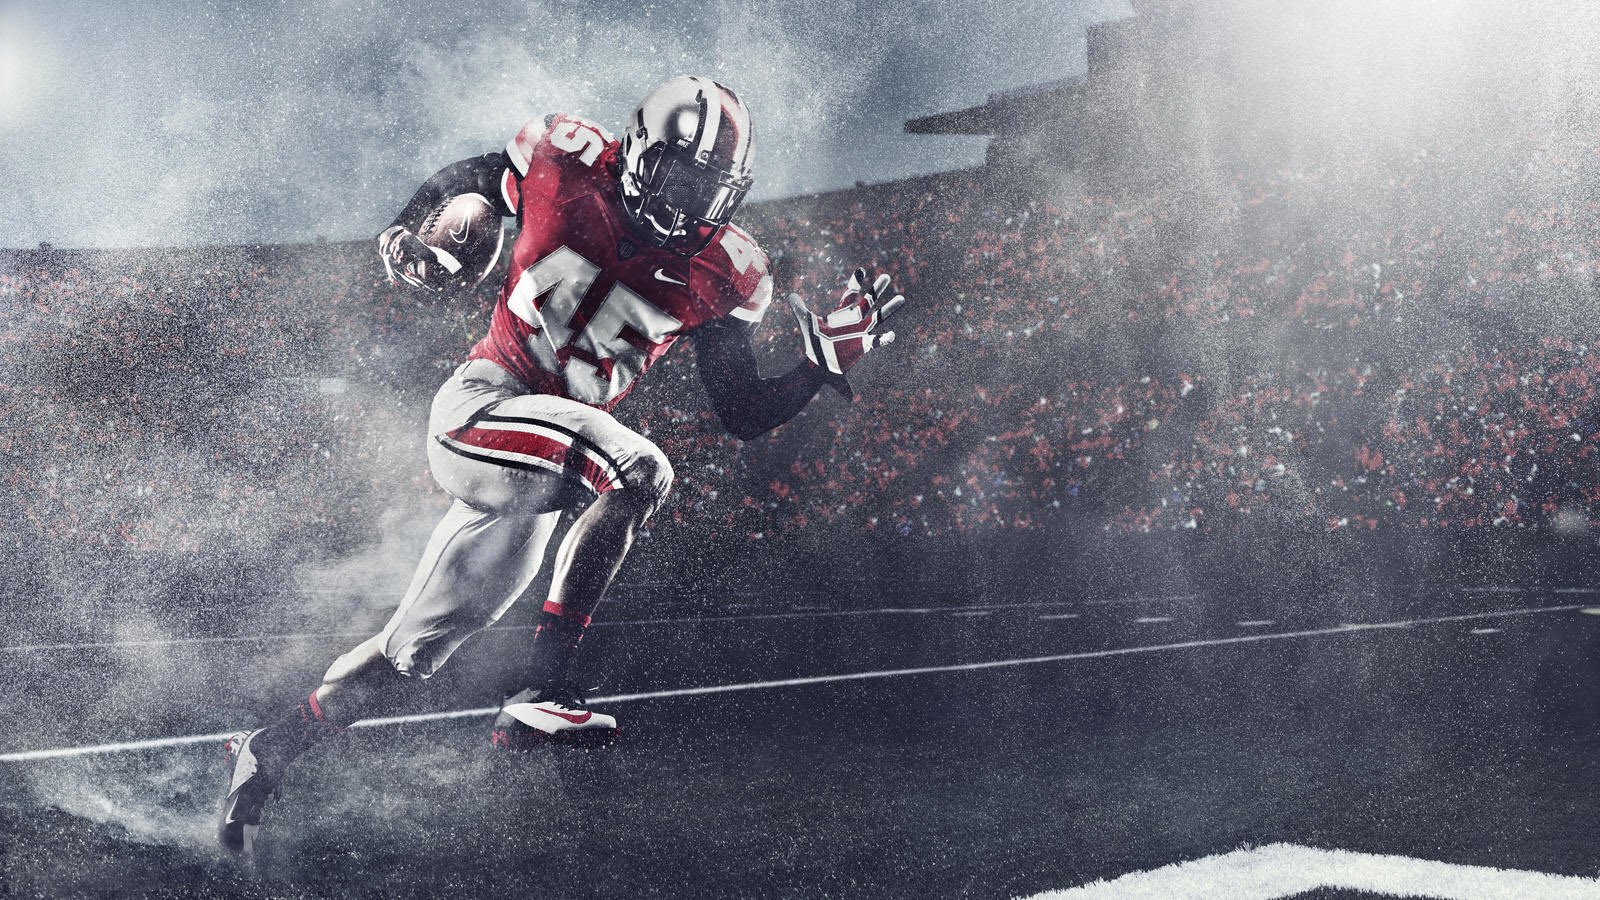 ... Ohio State football wallpaper for with new uniform | HD Wallpapers for